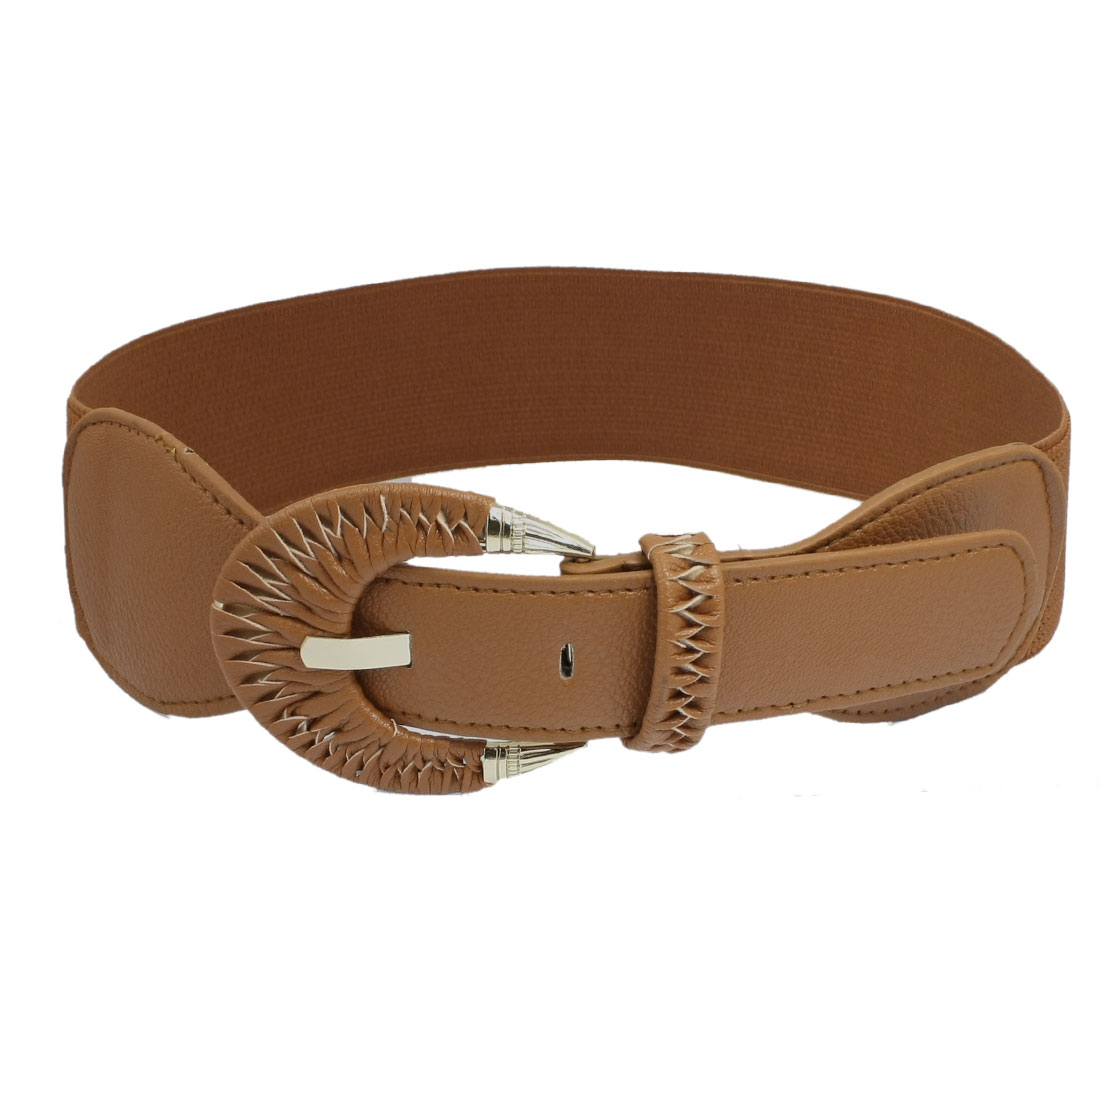 Metal Single Prong Buckle Elastic Brown Waistband Belt for Women